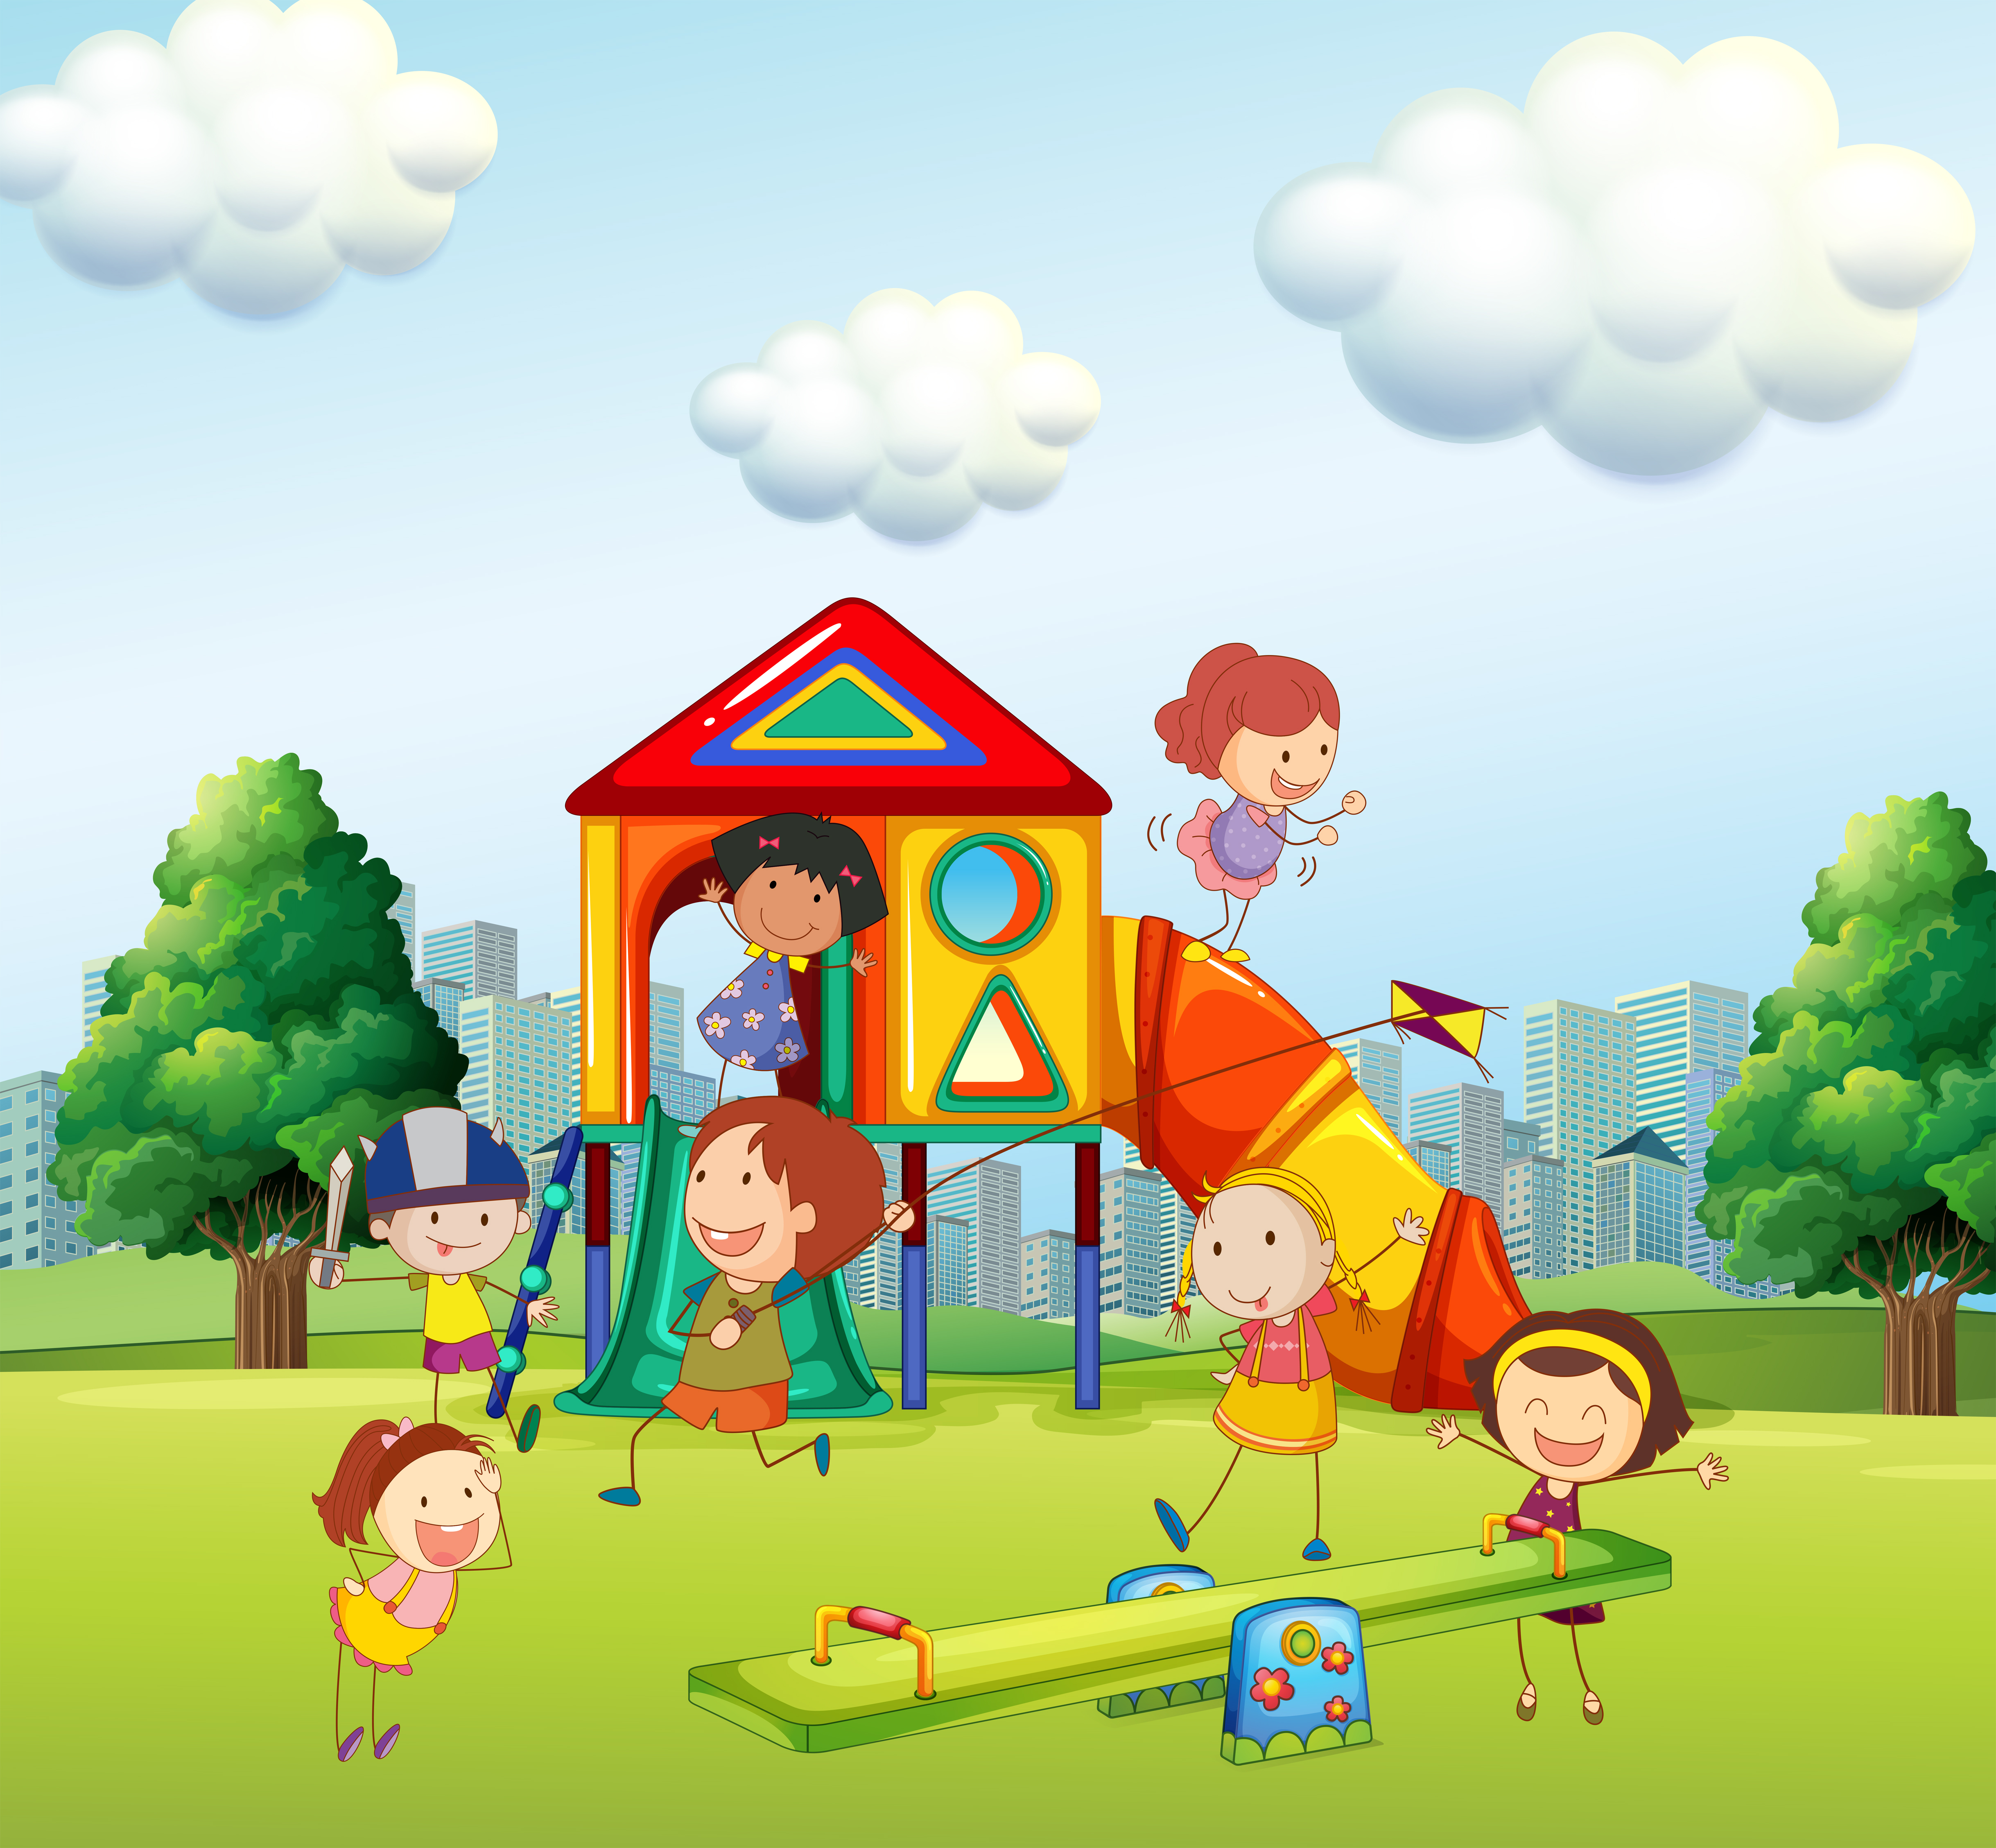 Children playing slide in the park - Download Free Vectors ...